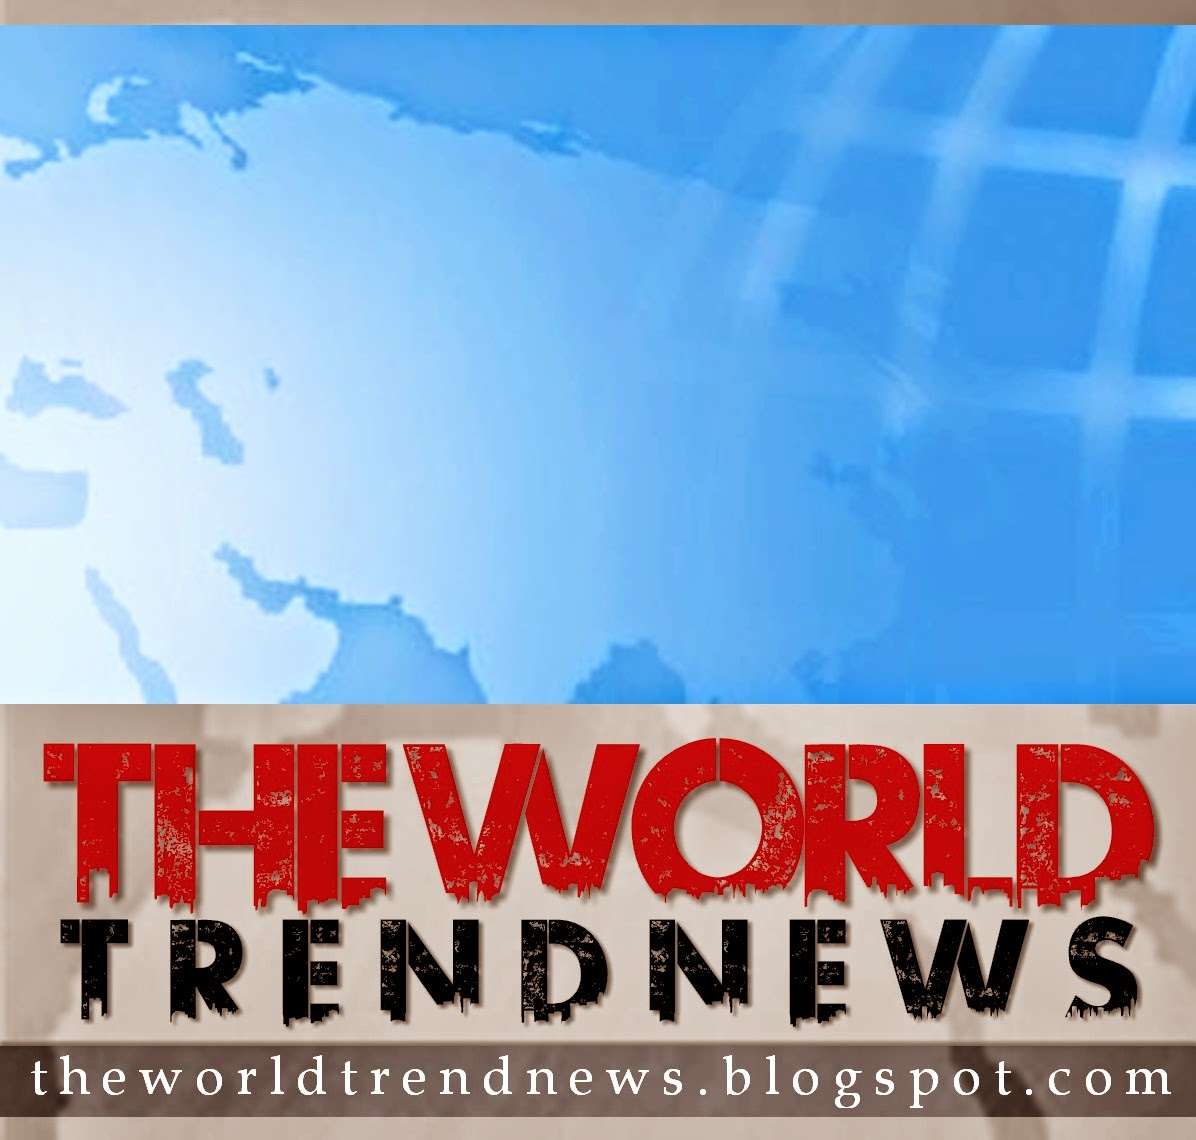 The World Trend News - www.theworldtrendnews.blogspot.com (About - Policy)